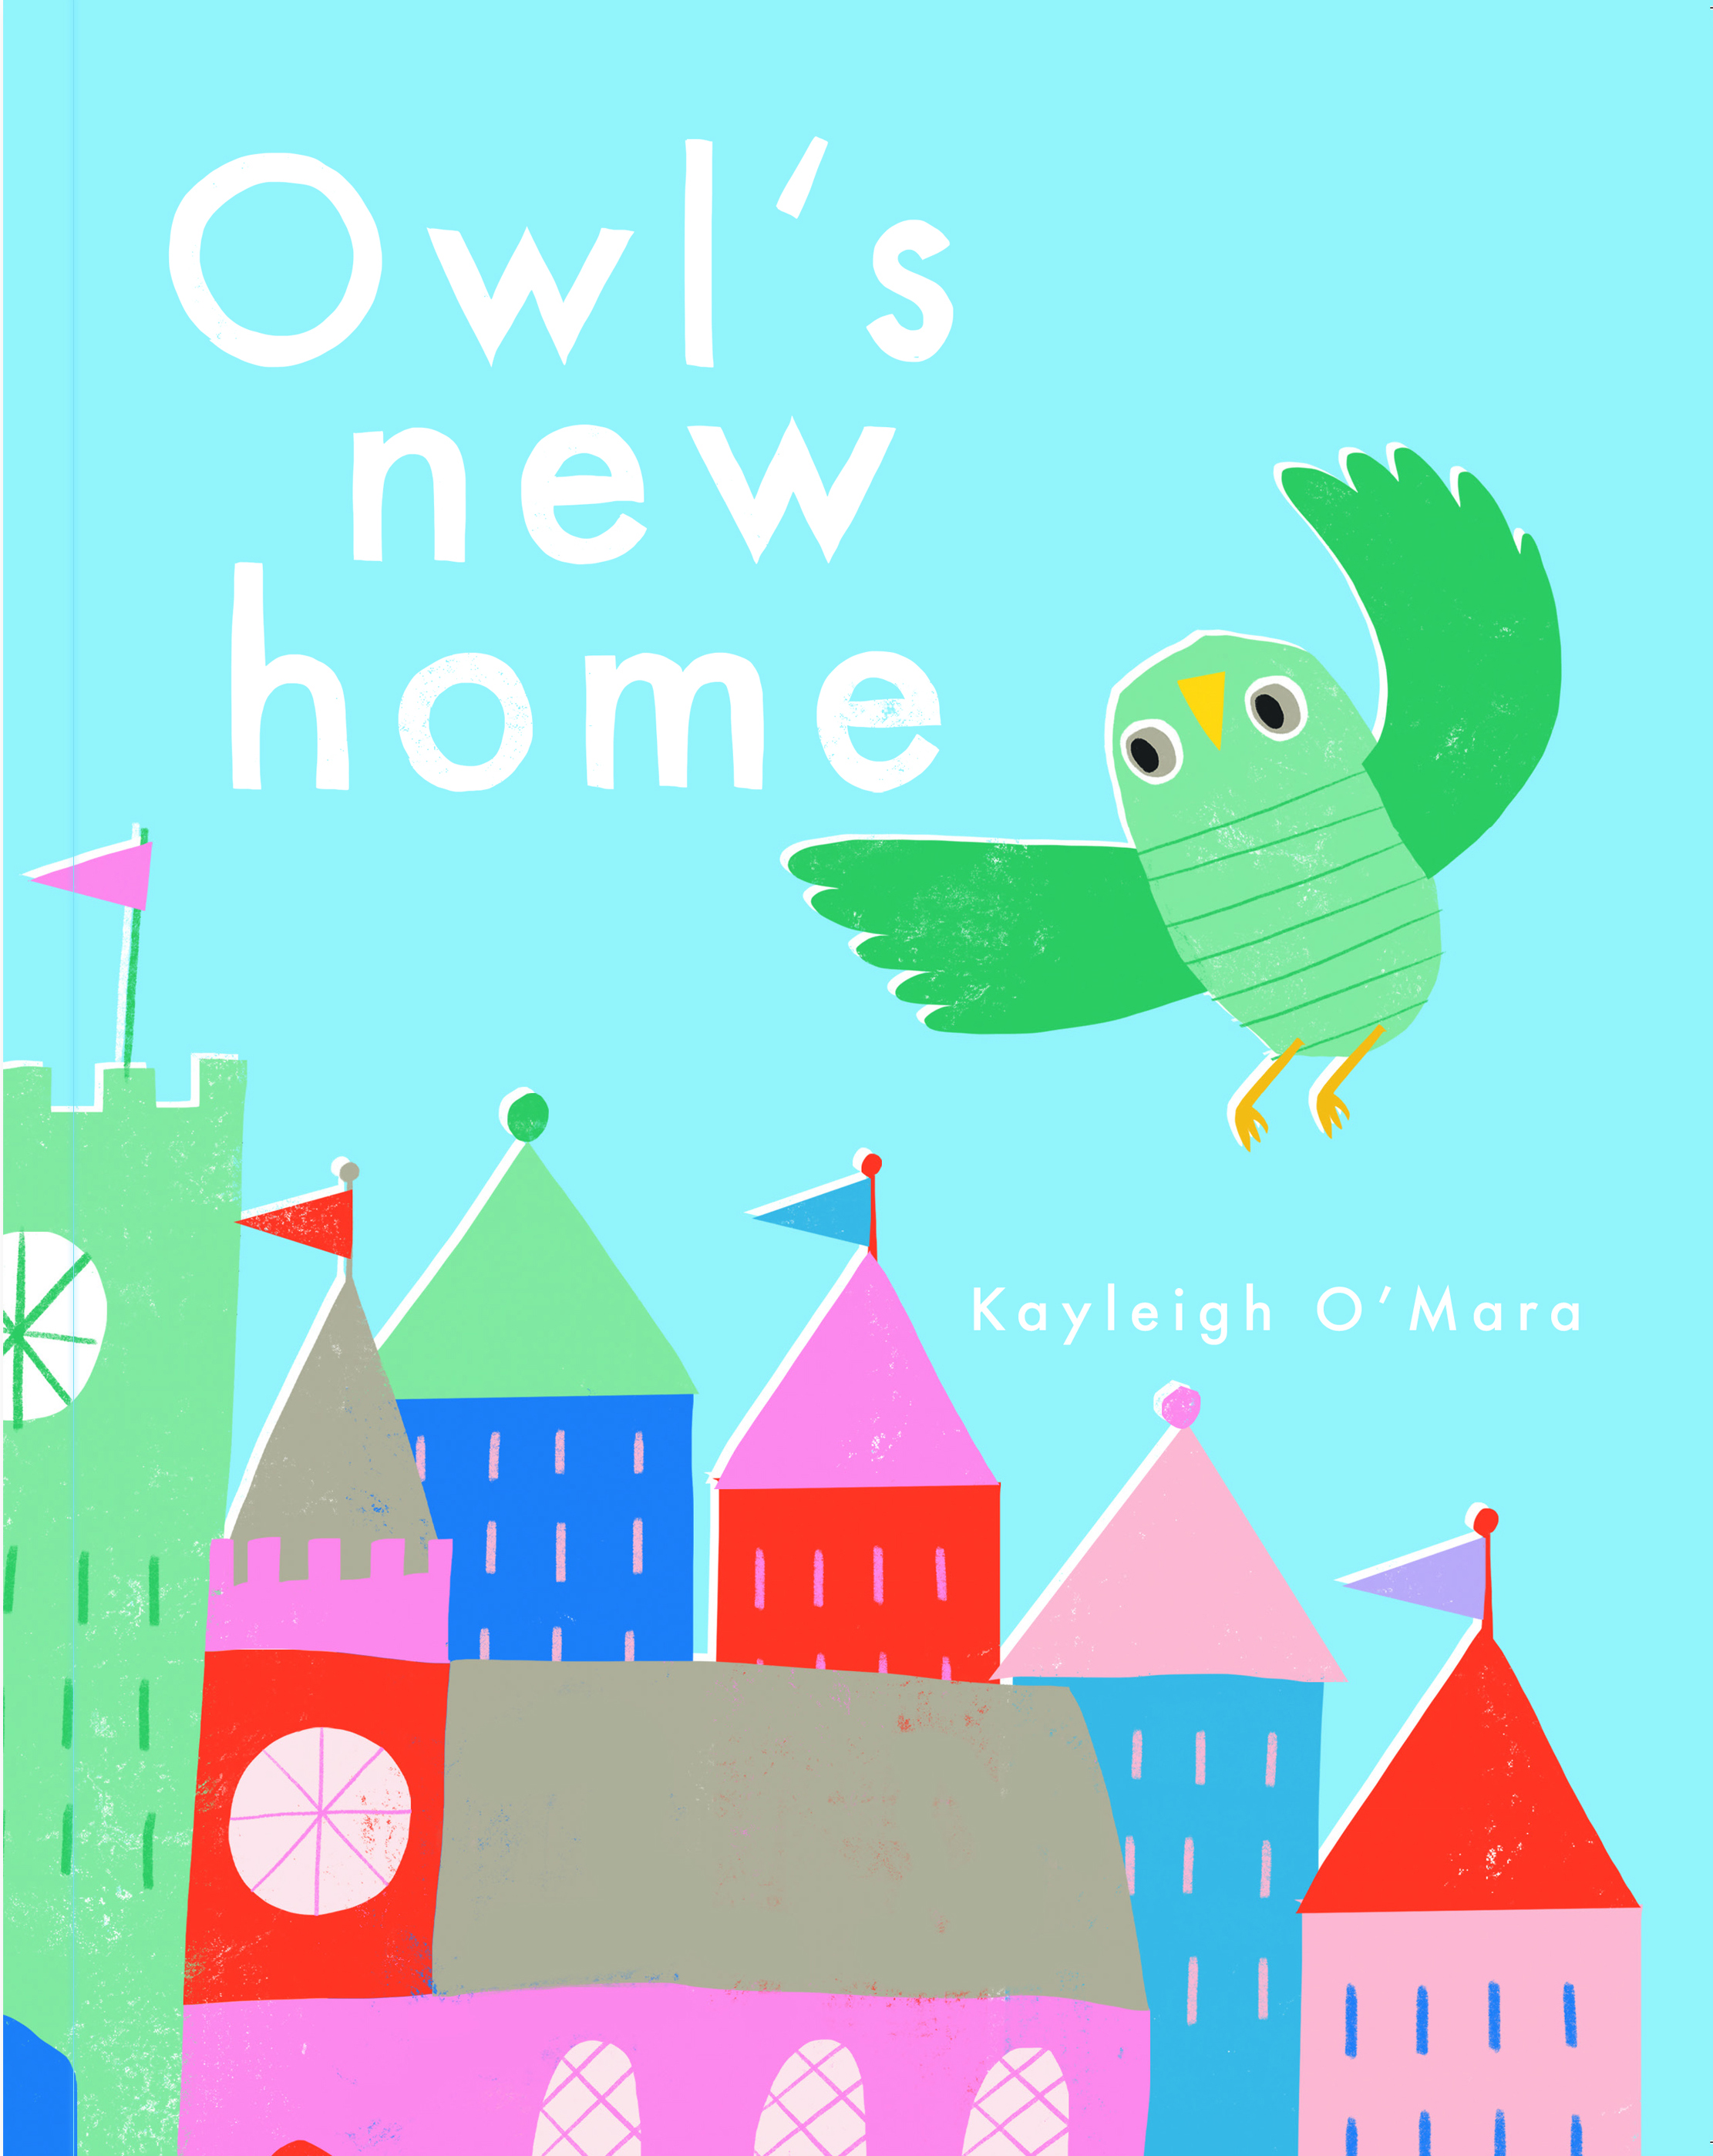 Owl's new home, an illustrated children's book